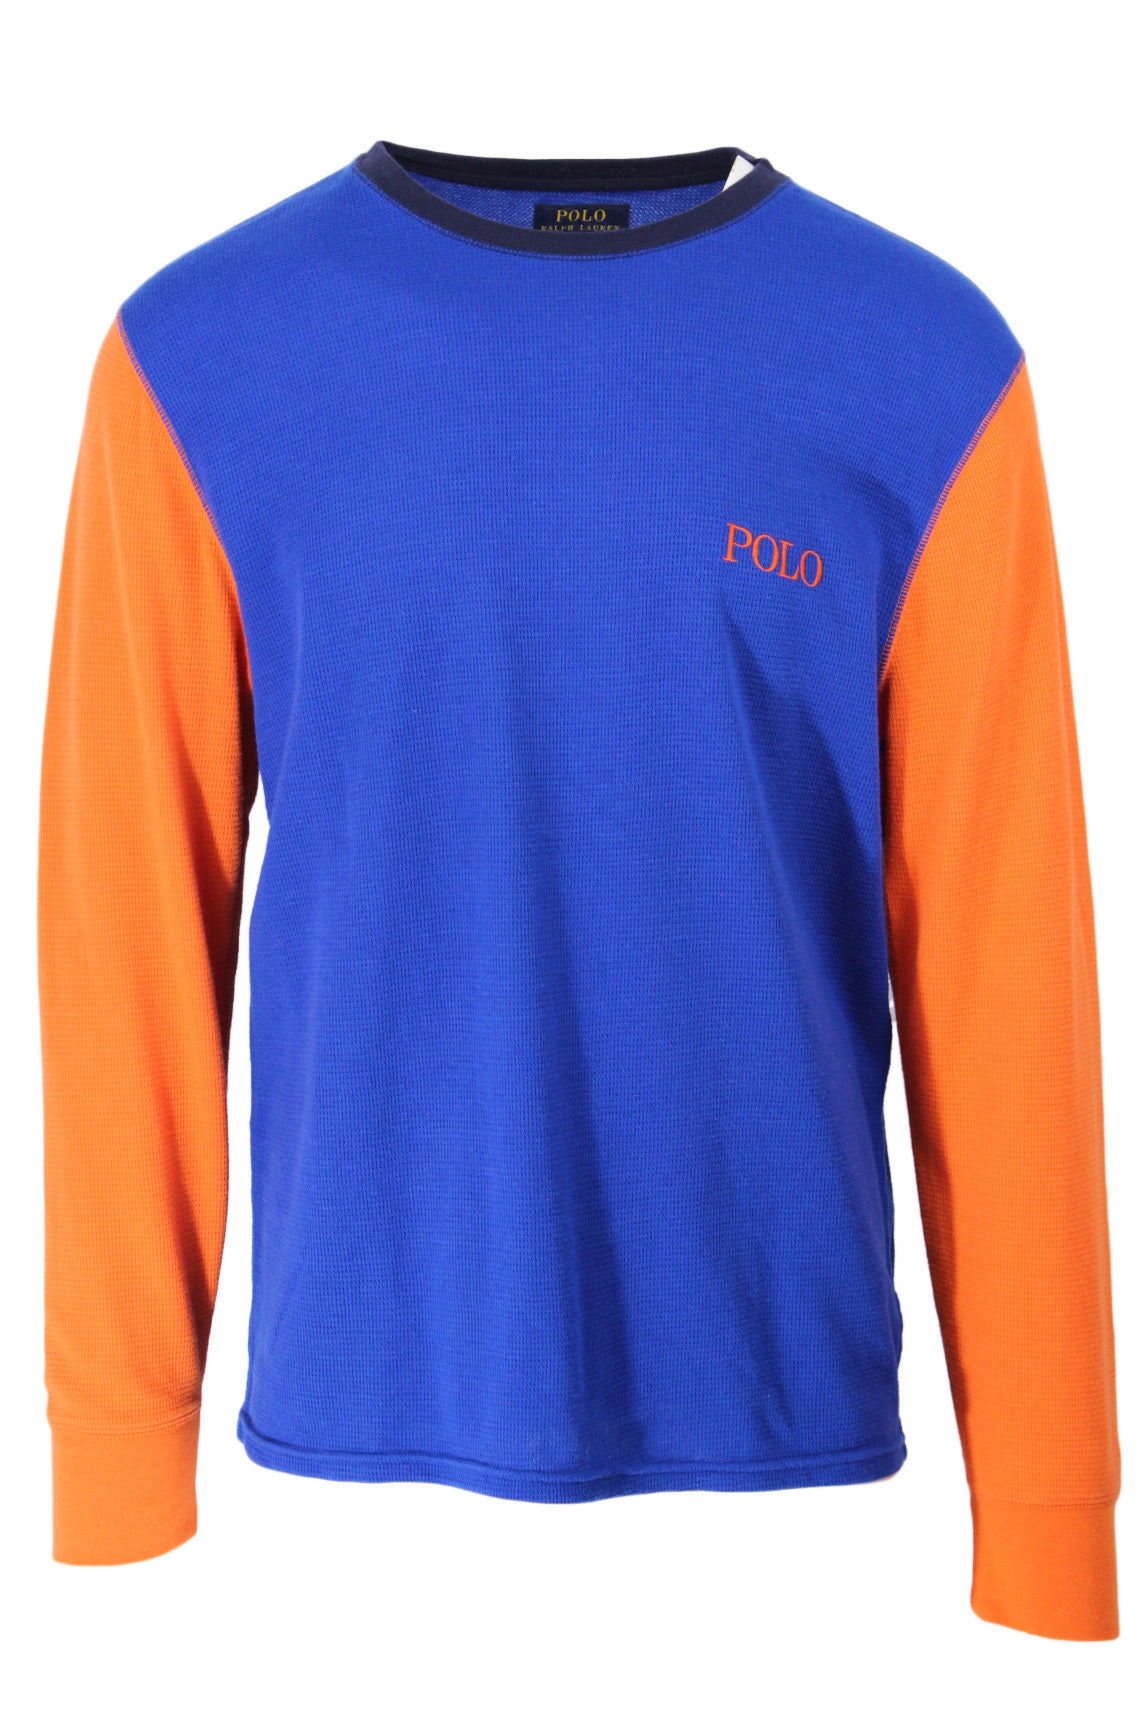 polo ralph lauren royal blue/orange long sleeve waffle knit shirt. features 'polo' logo embroidered at left breast with ribbed collar and cuffs.